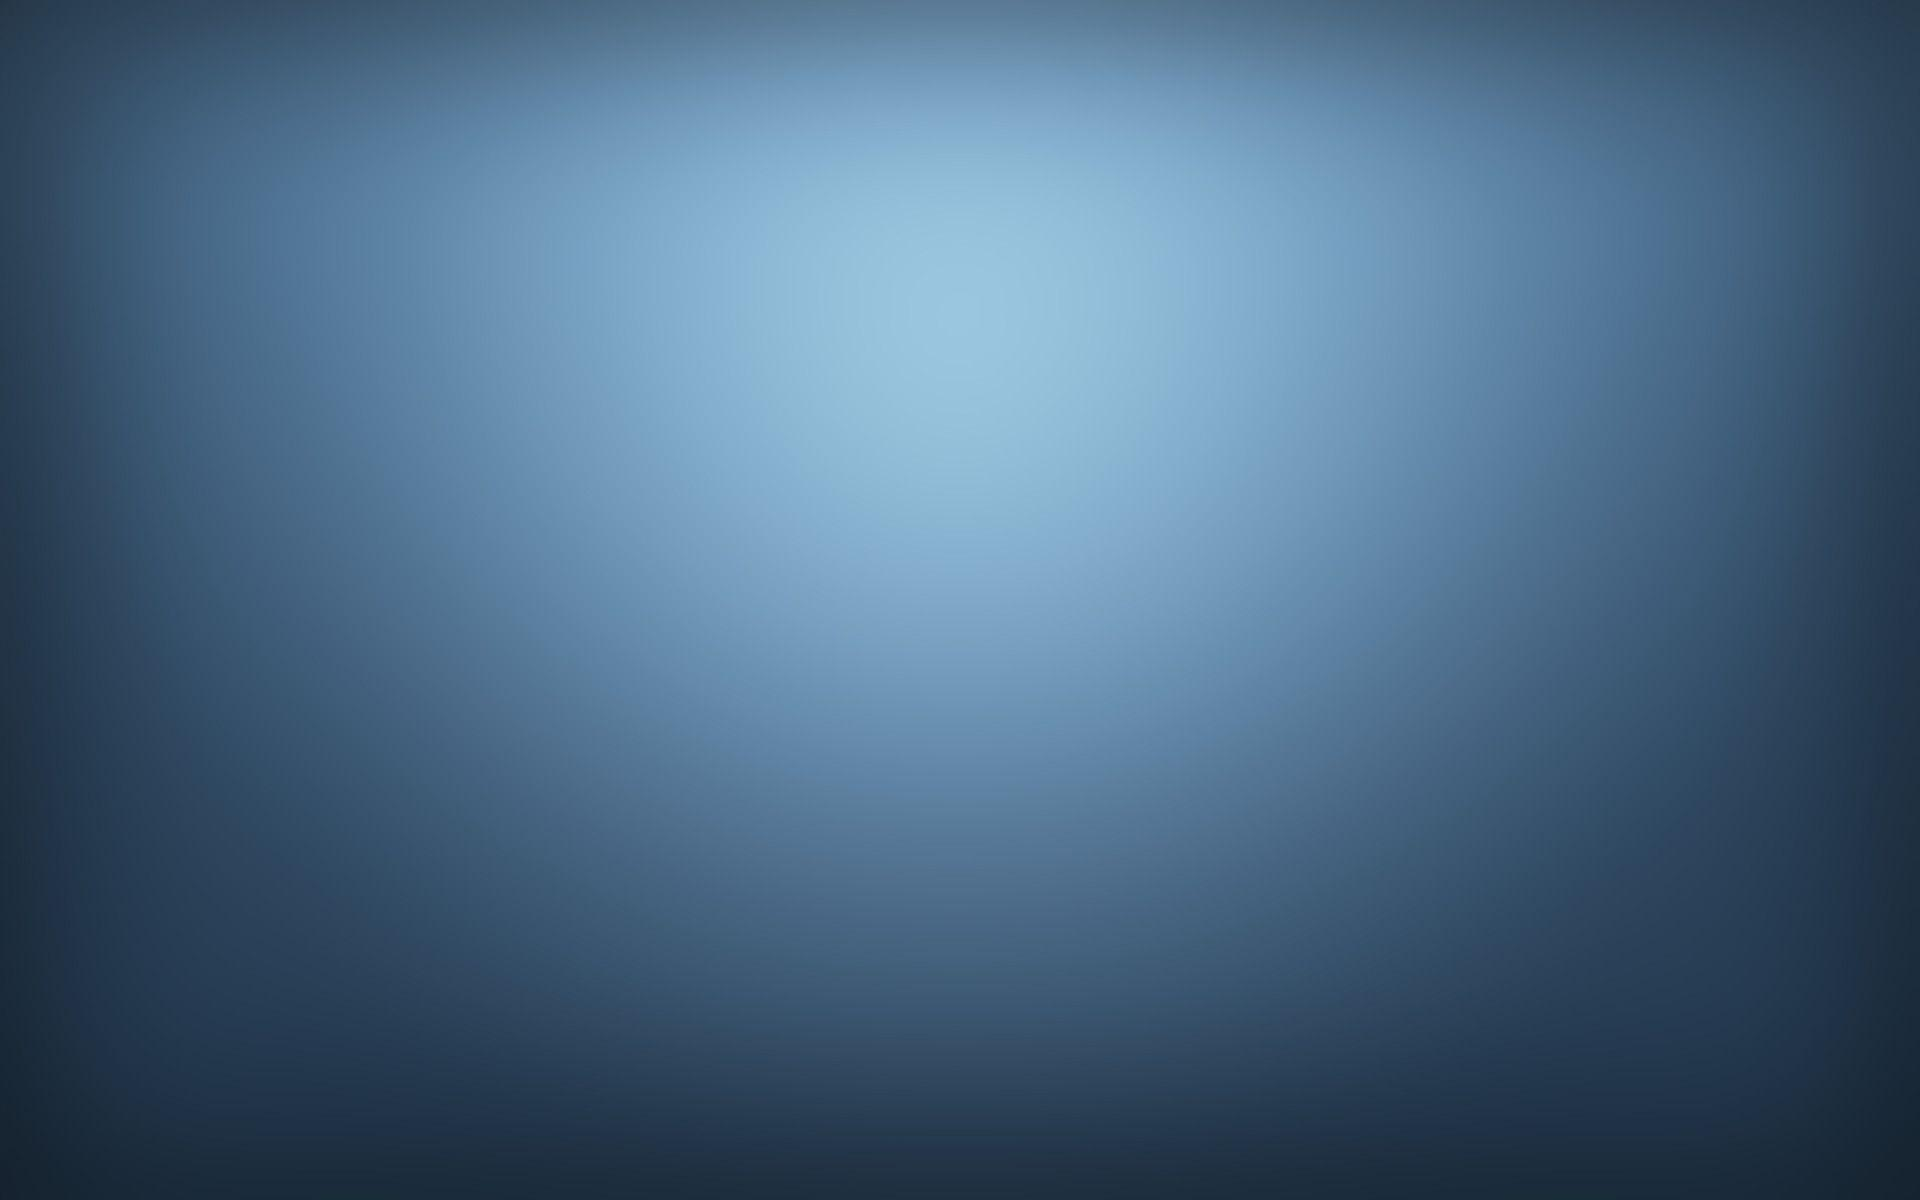 simple blue backgrounds hd - photo #3